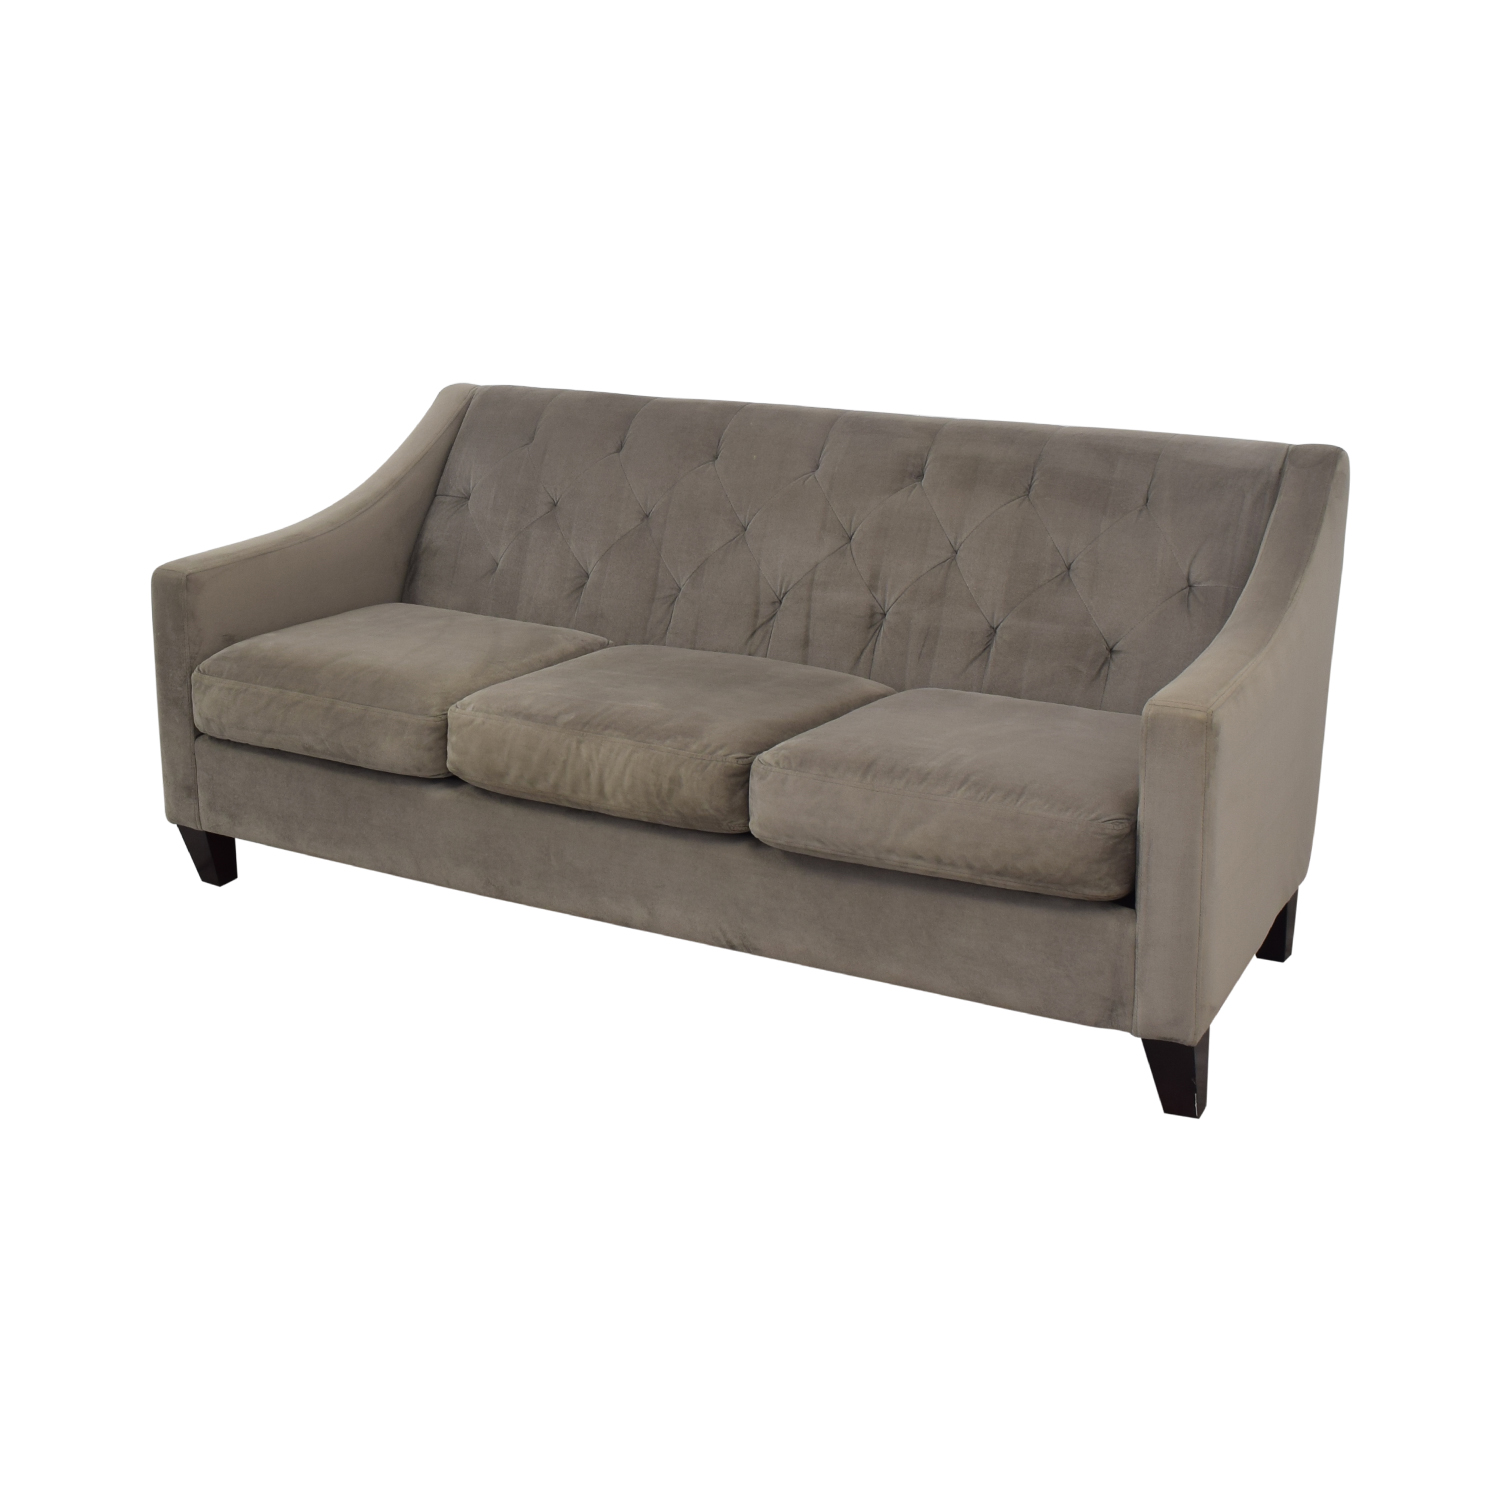 Max Home Max Home Modern Sofa grey